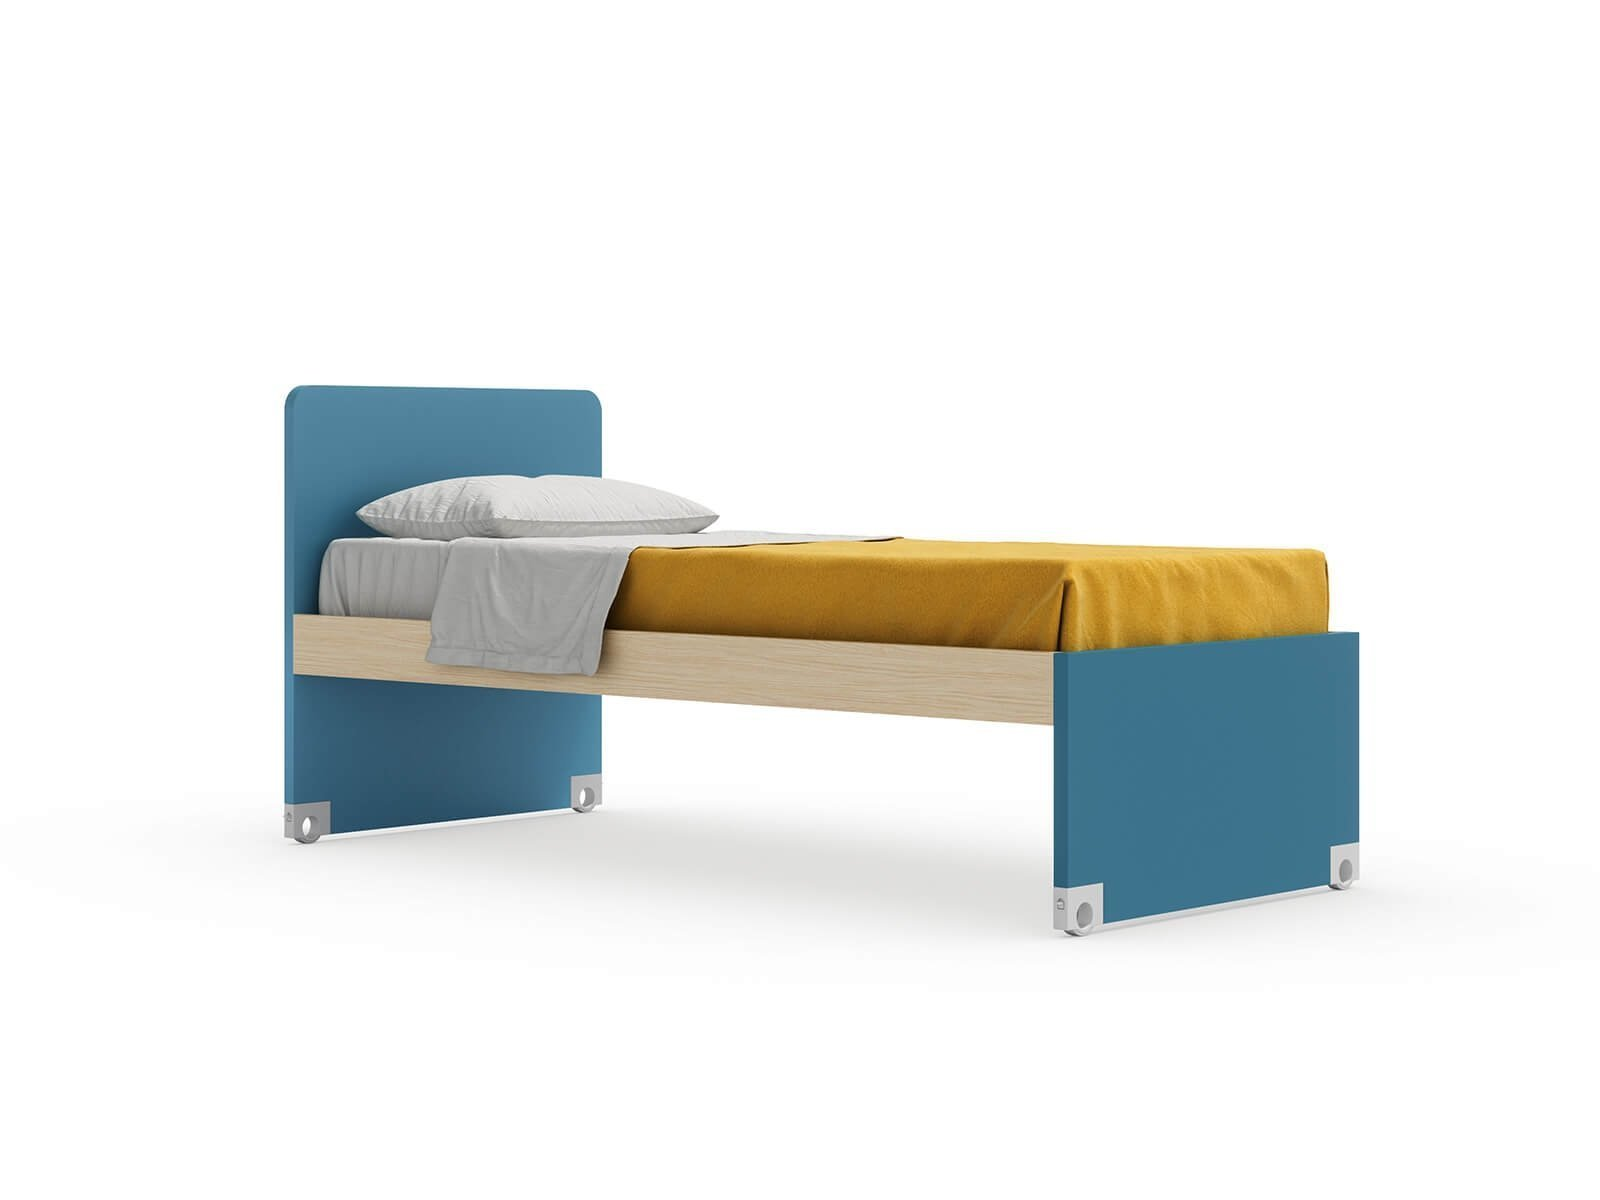 Ergo single bed